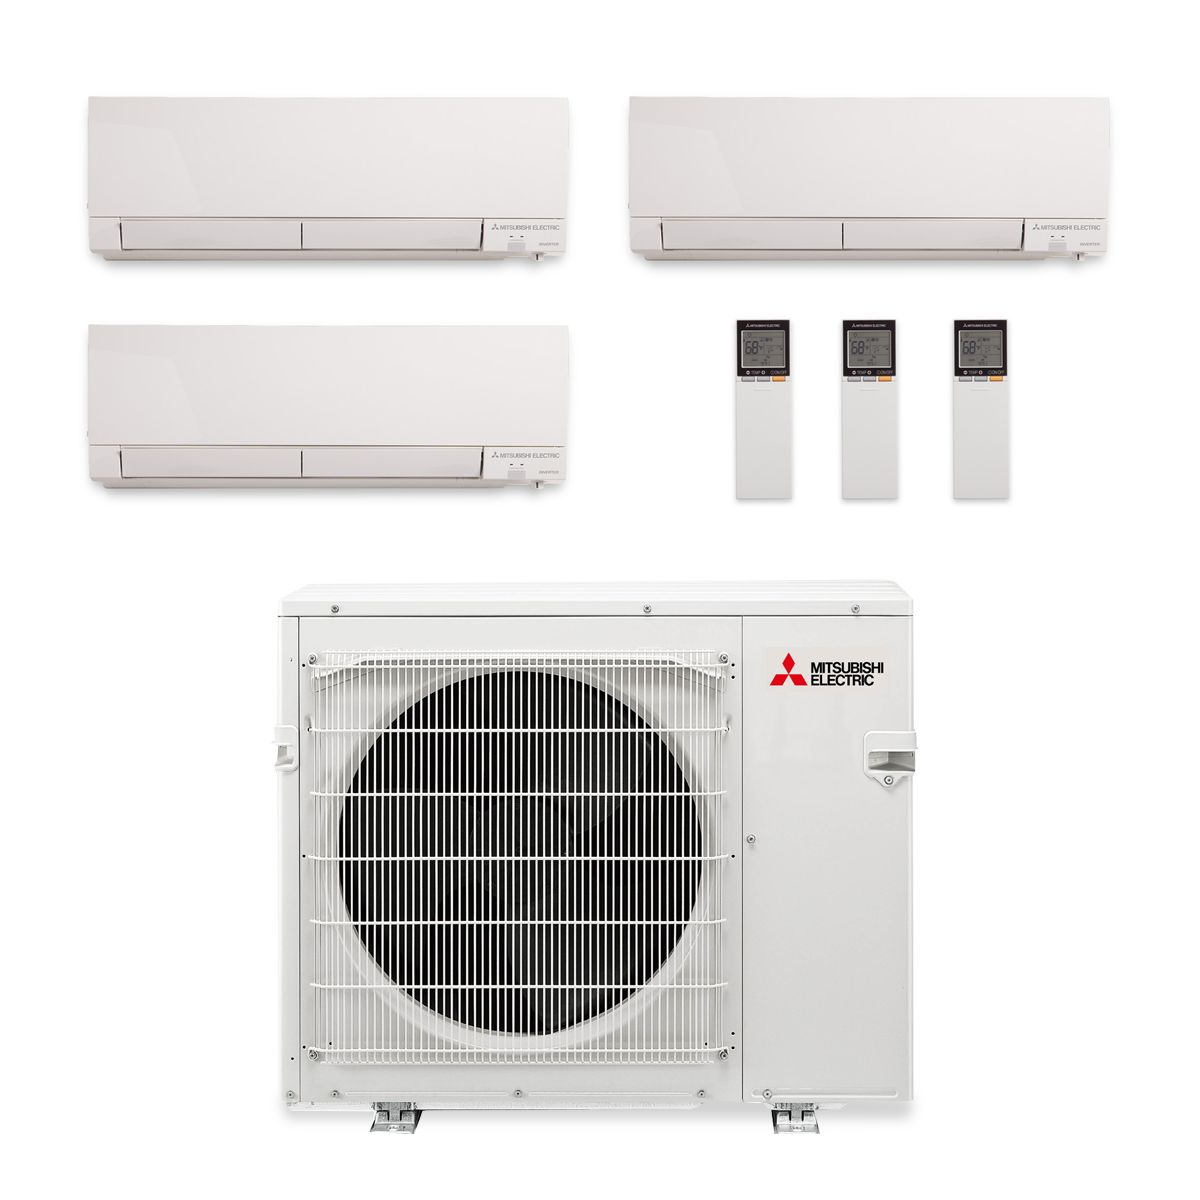 wall constrain fit hei split zone heat mitsubishi normal mount review wid hyper mini en air btu article penta conditioner mxz ductless